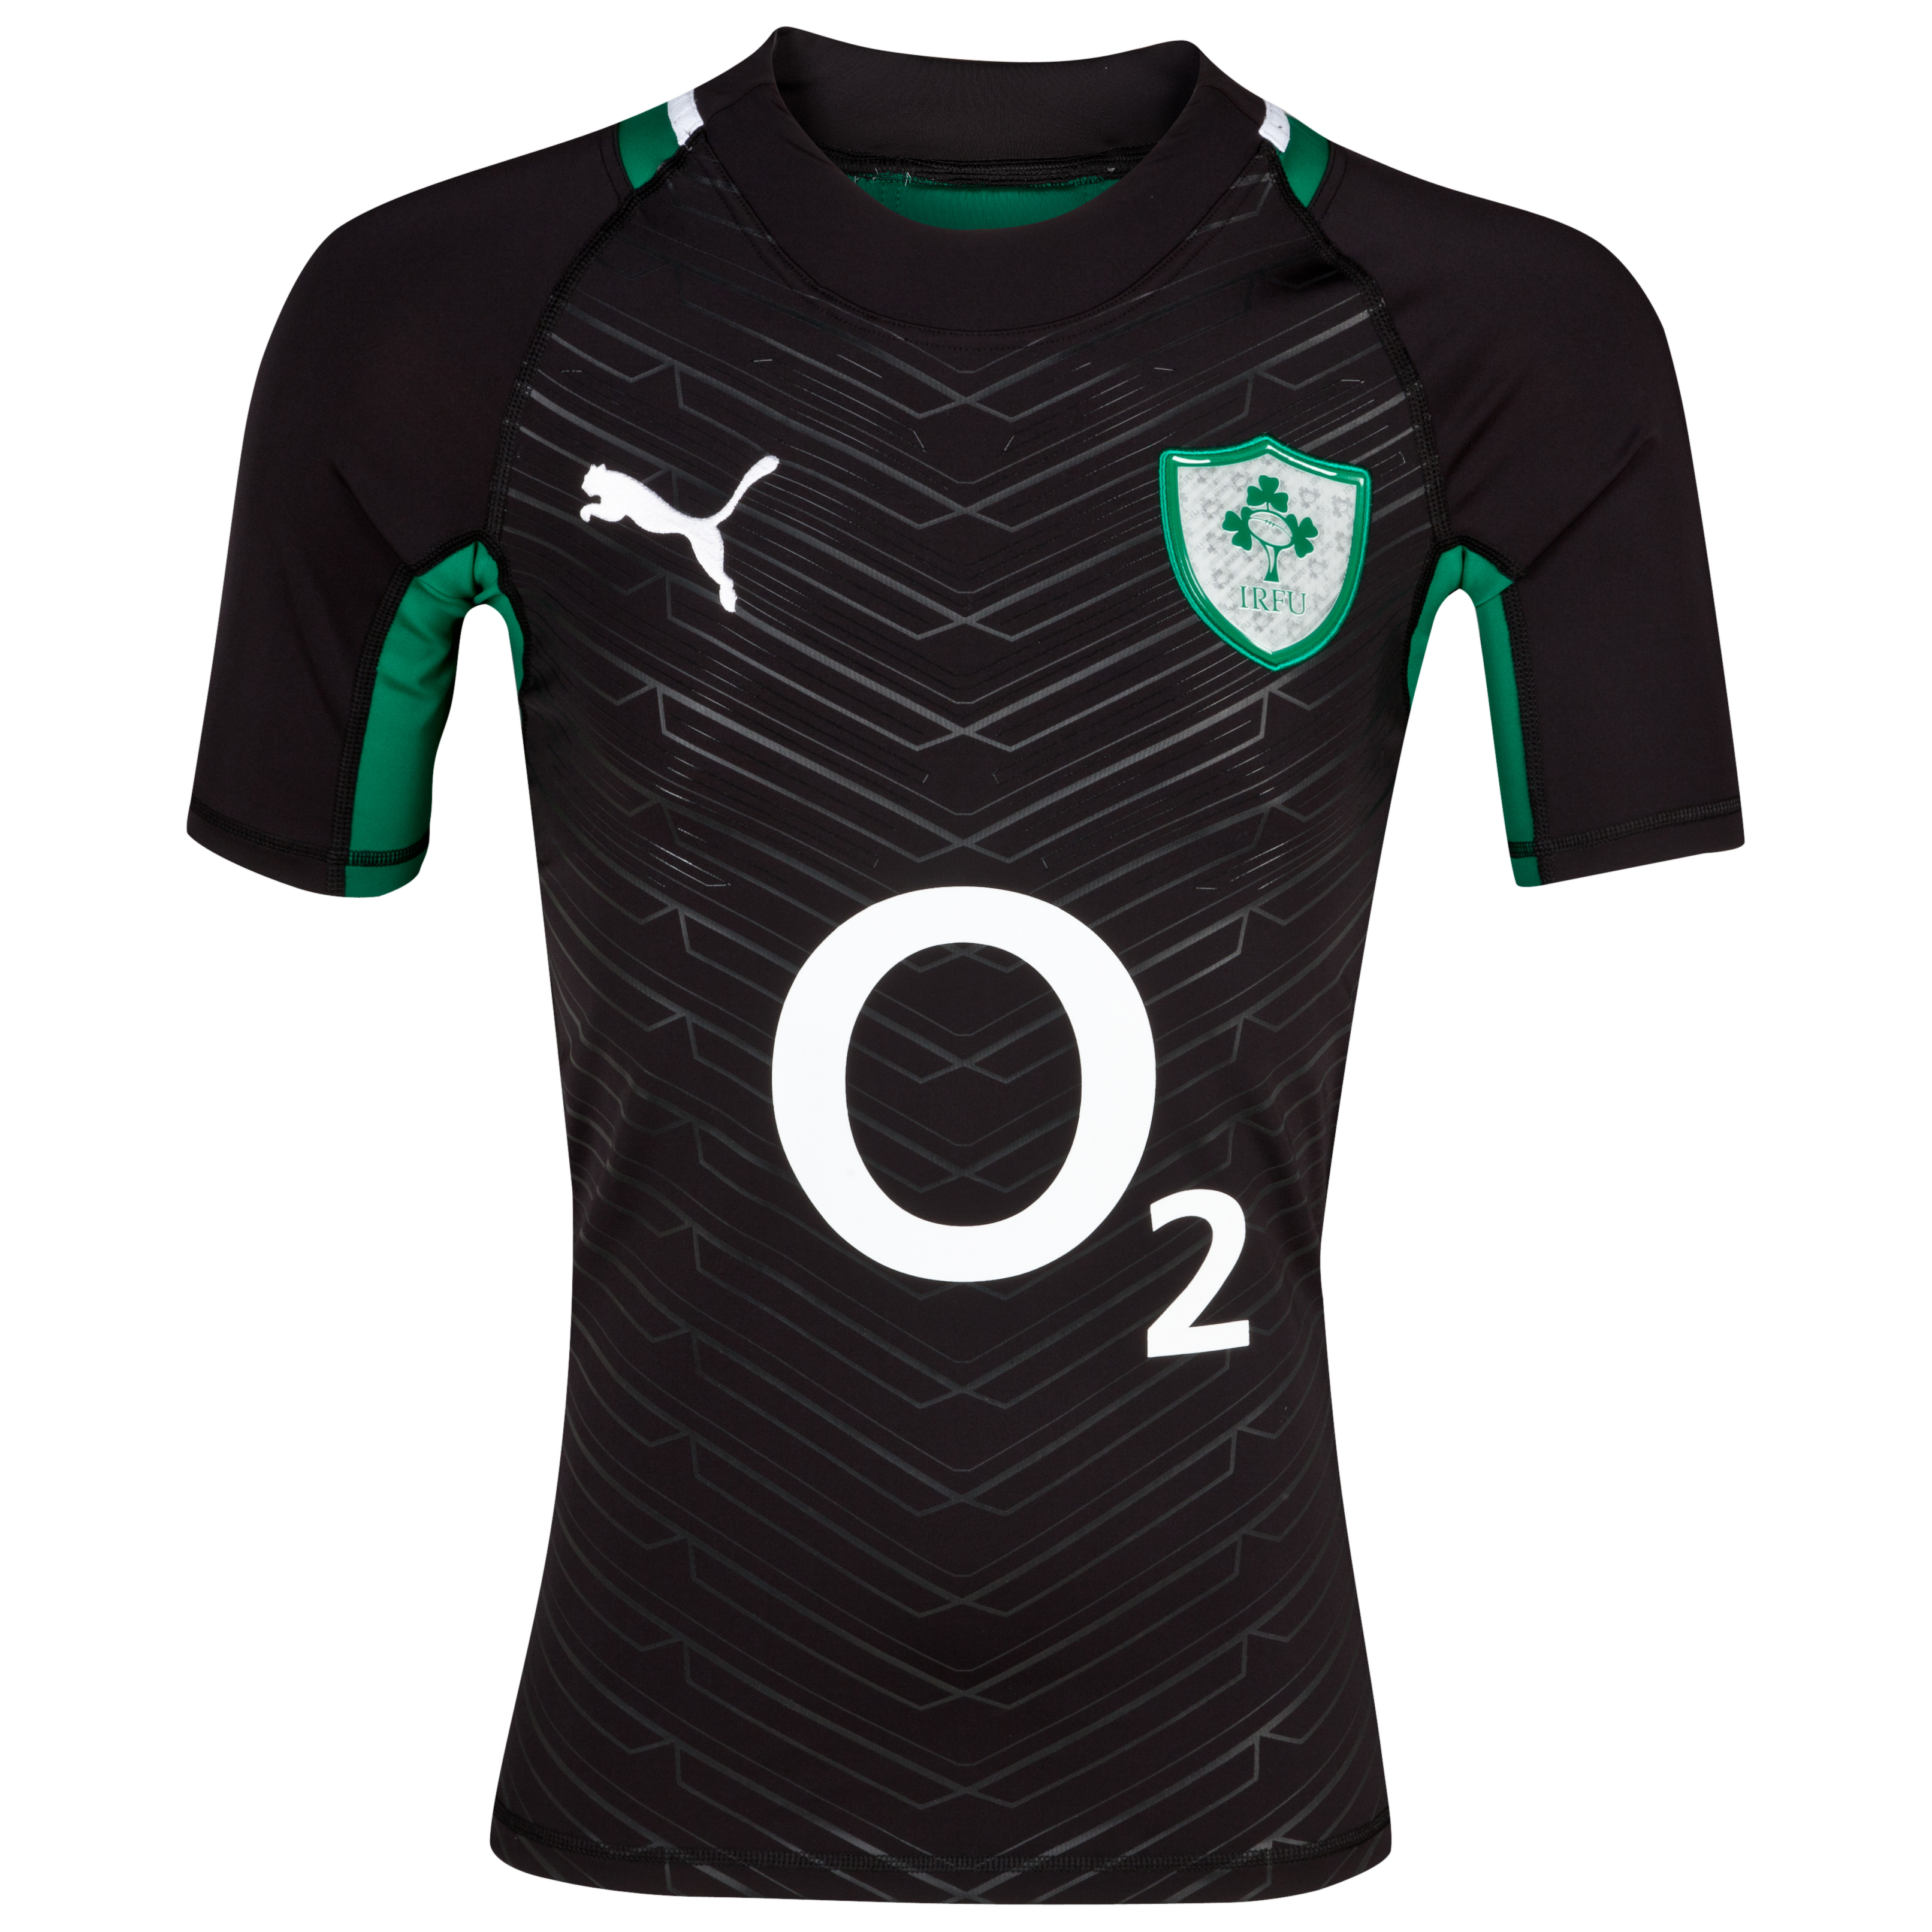 Ireland Rugby Alternative Pro Shirt 2012/13